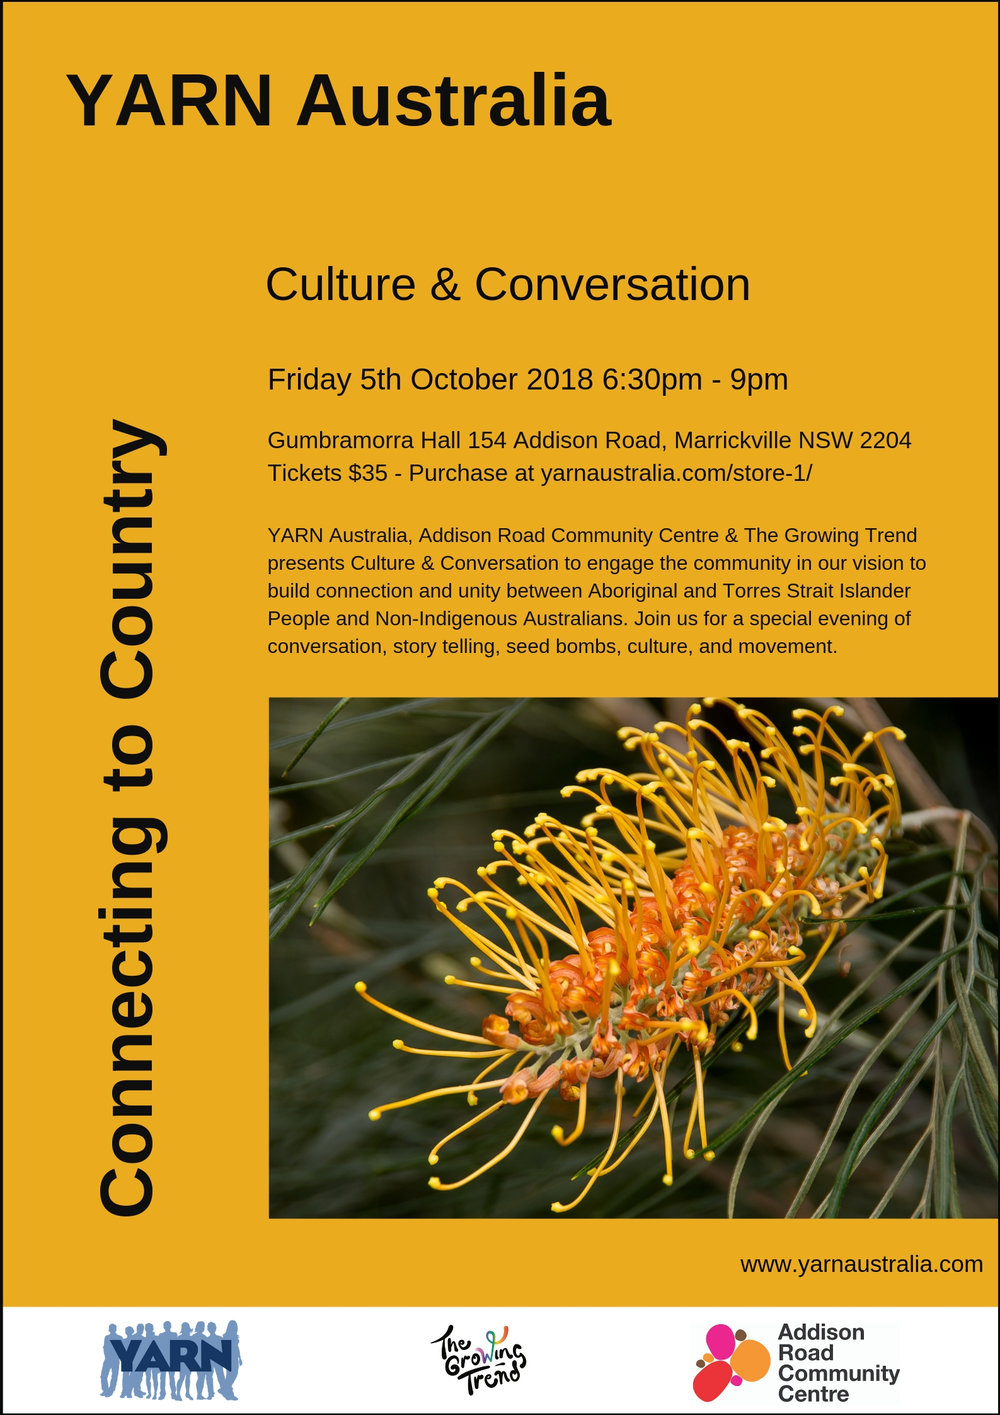 YARN Australia 5th October 2018 Culture & Conversation Poster .jpg